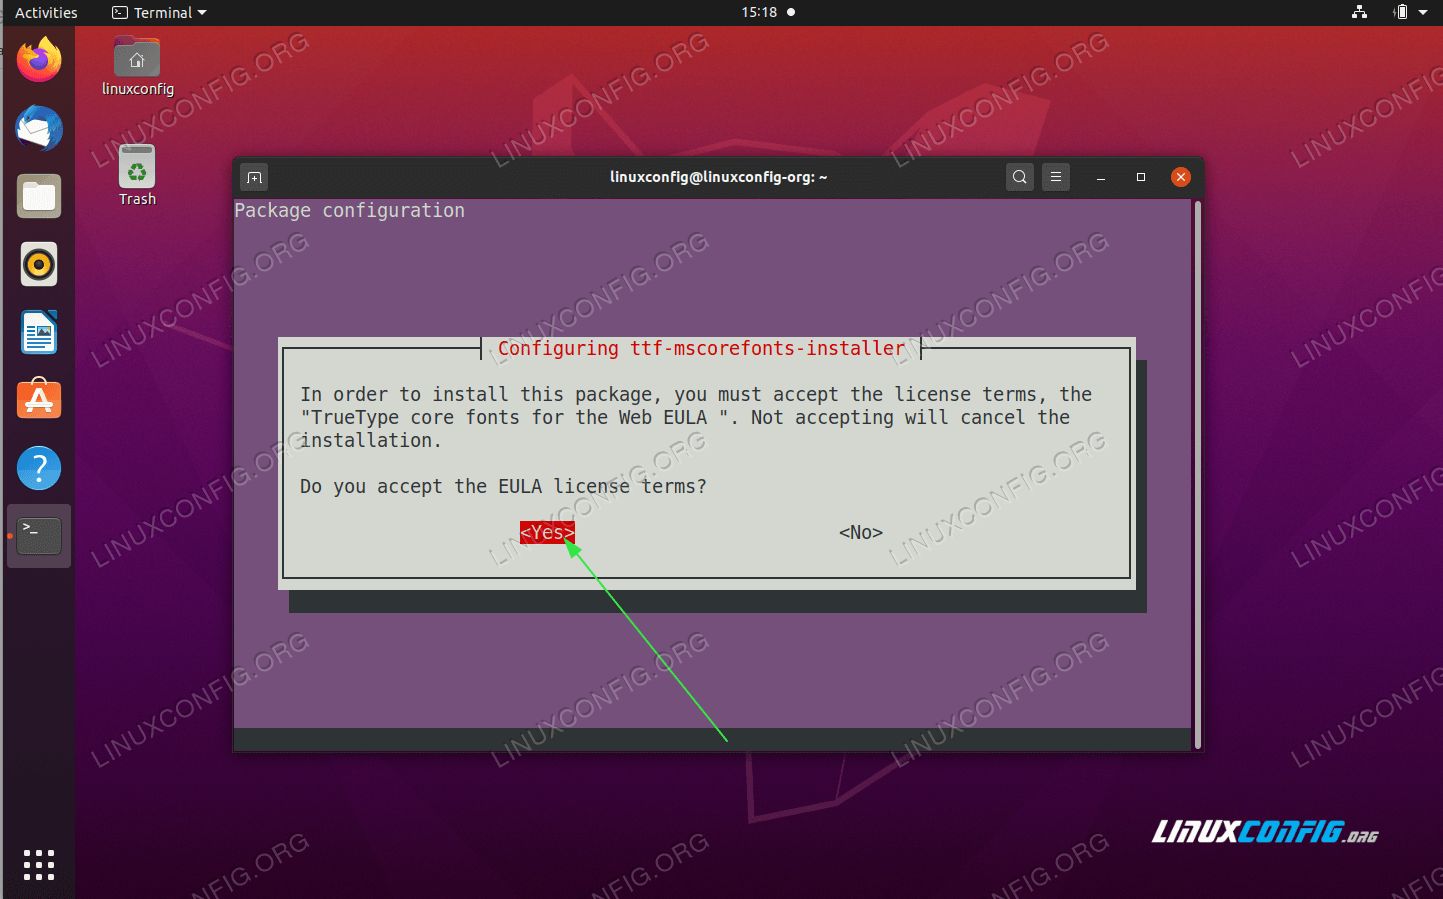 Accept the End User License Agreement<